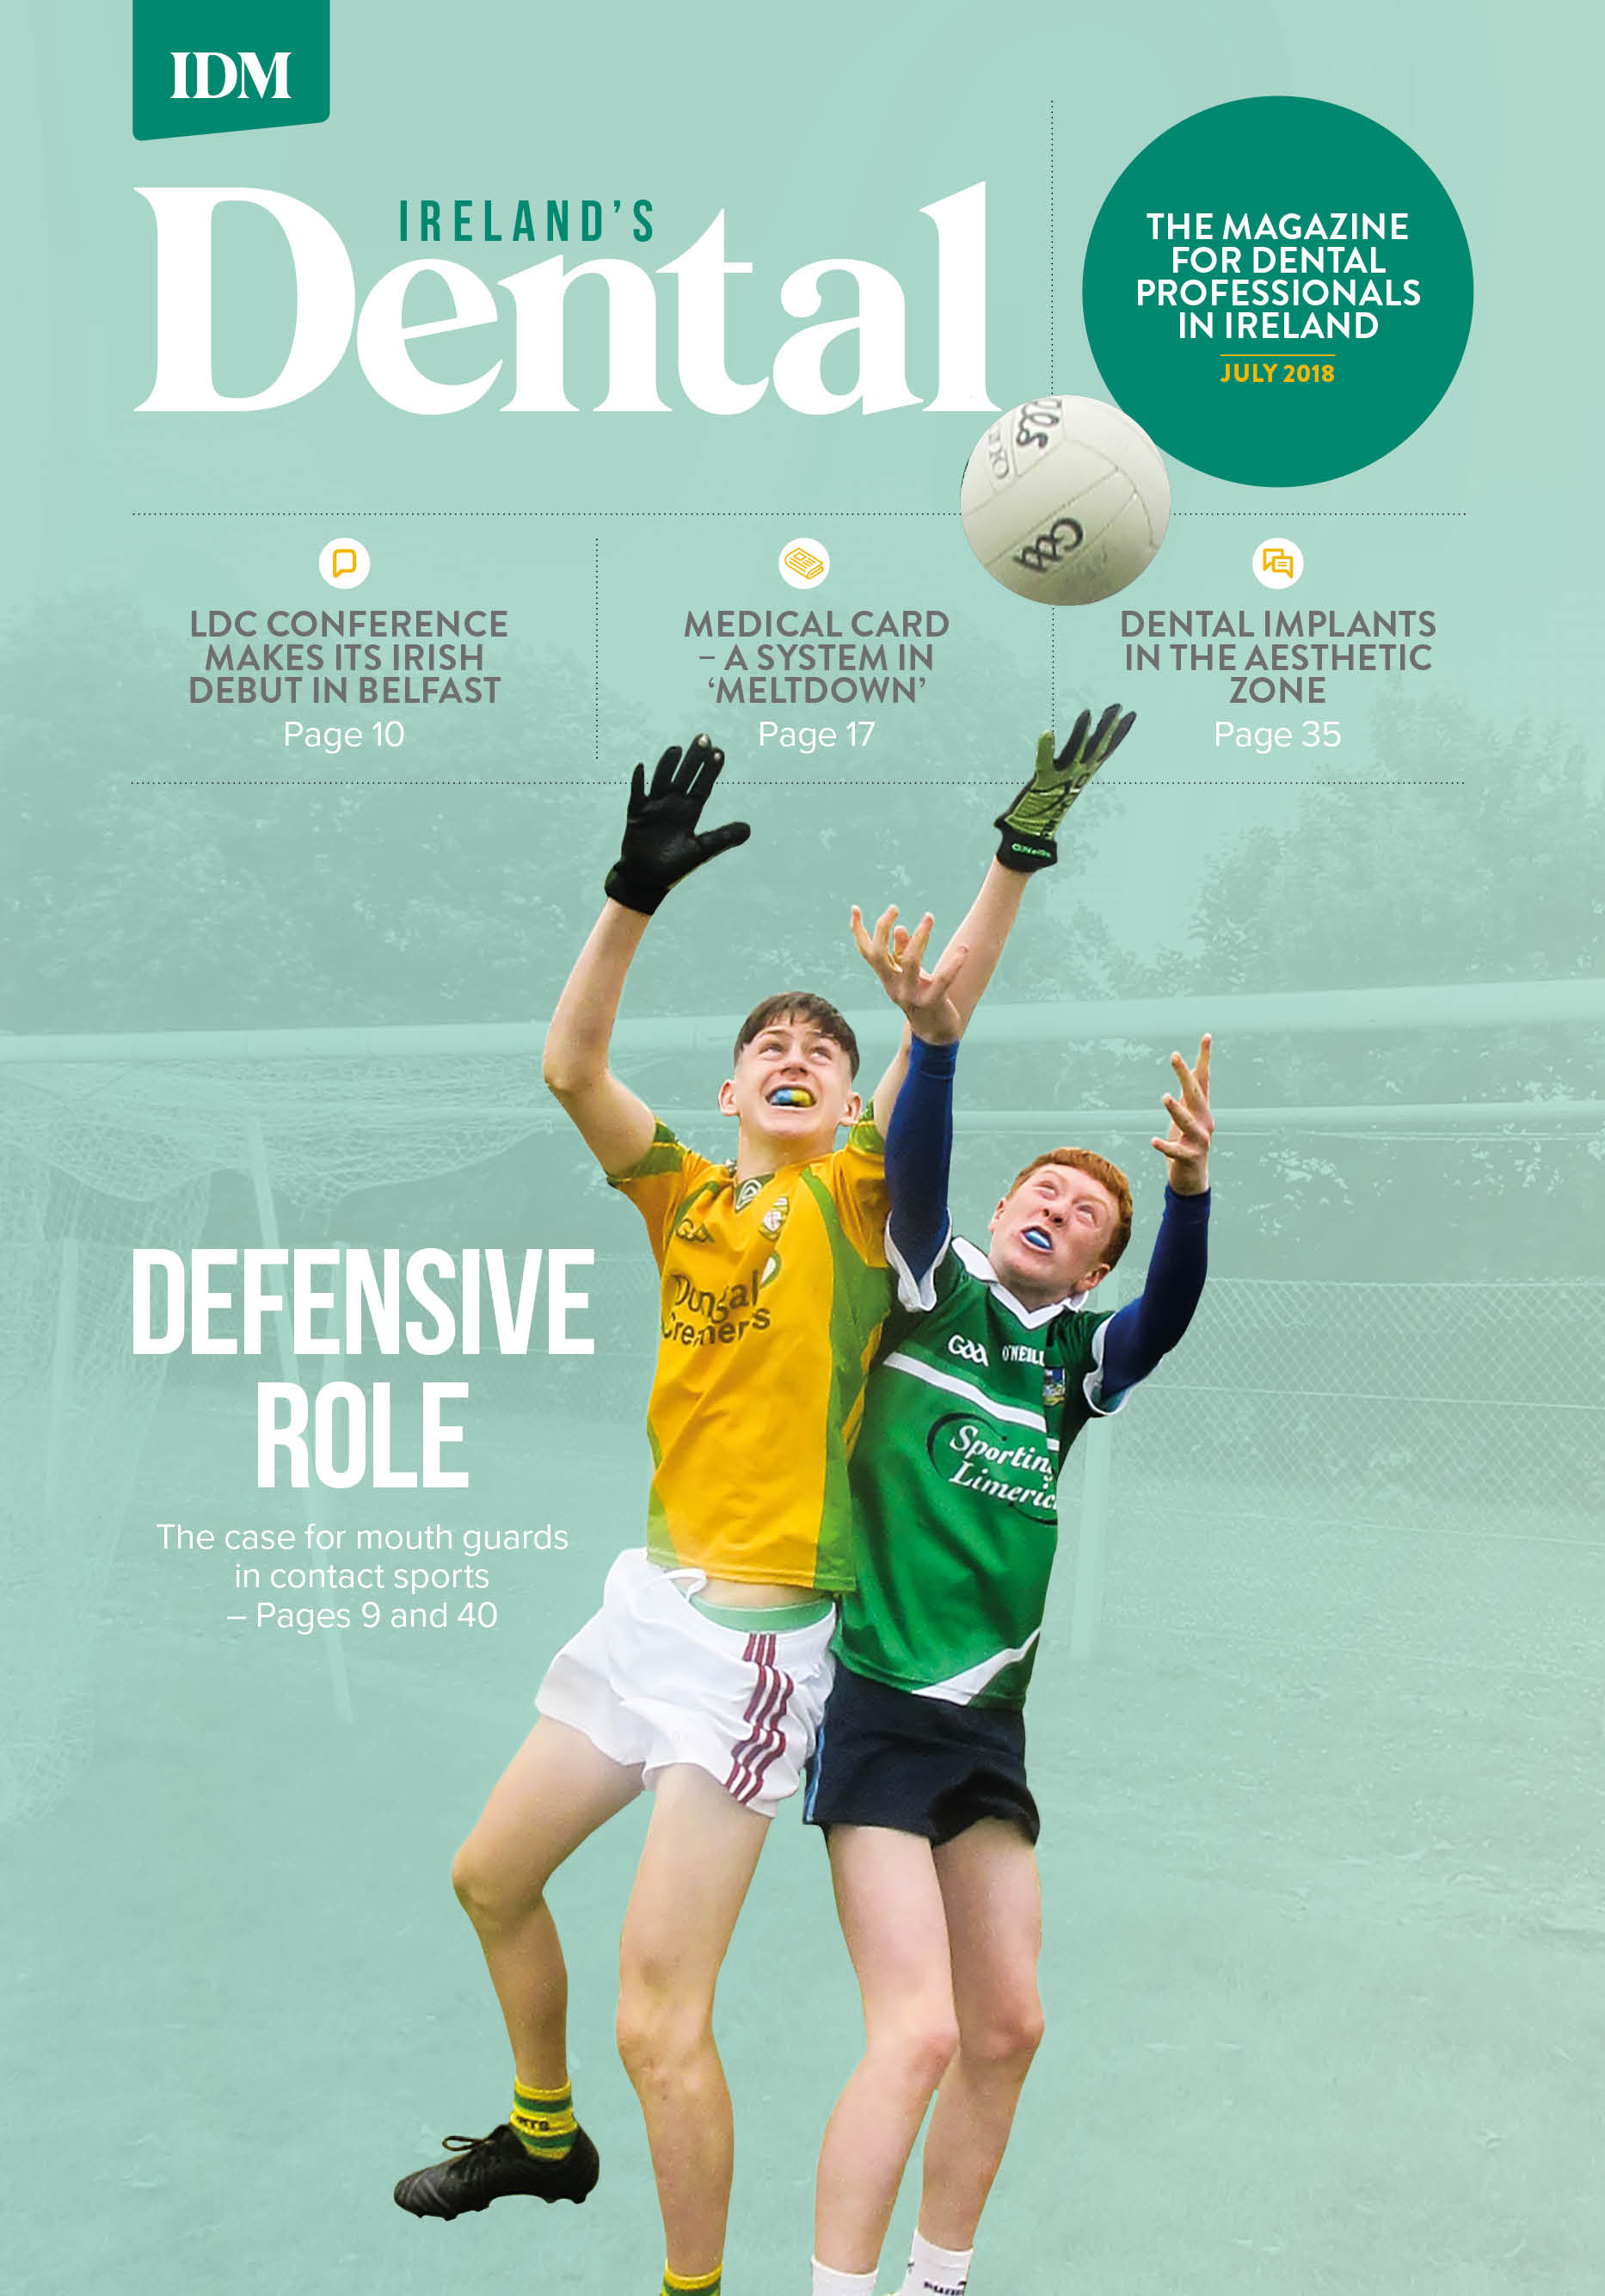 Ireland's Dental magazine July 2018 cover image